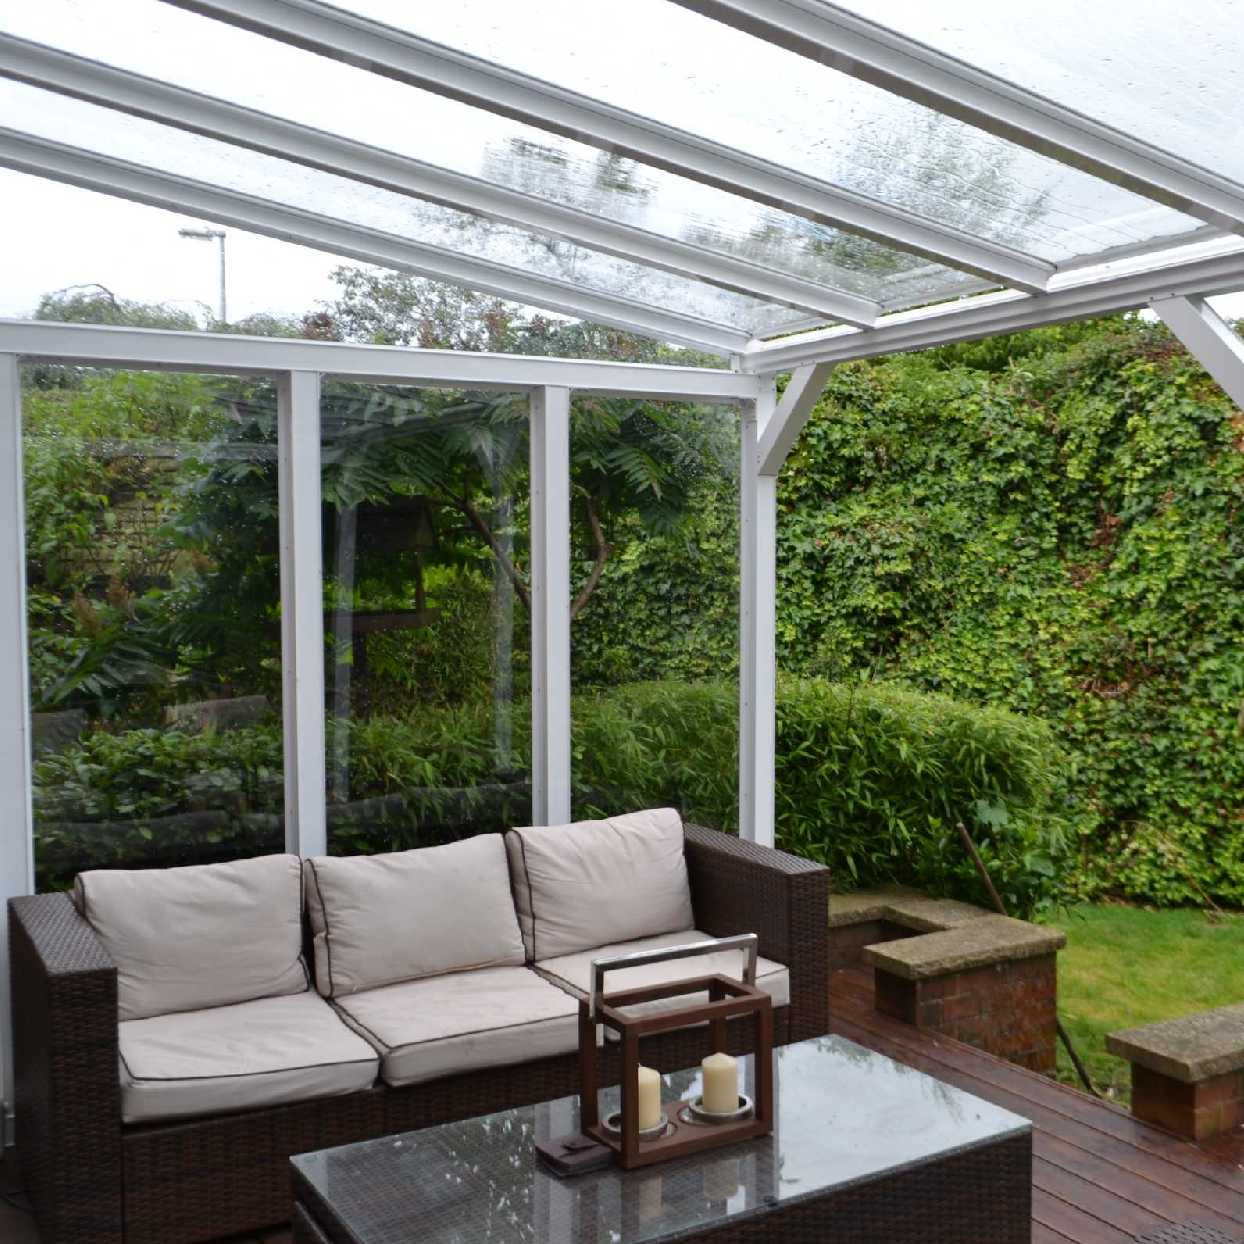 Omega Smart White Lean-To Canopy UNGLAZED for 6mm Glazing - 9.8m (W) x 2.5m (P), (5) Supporting Posts